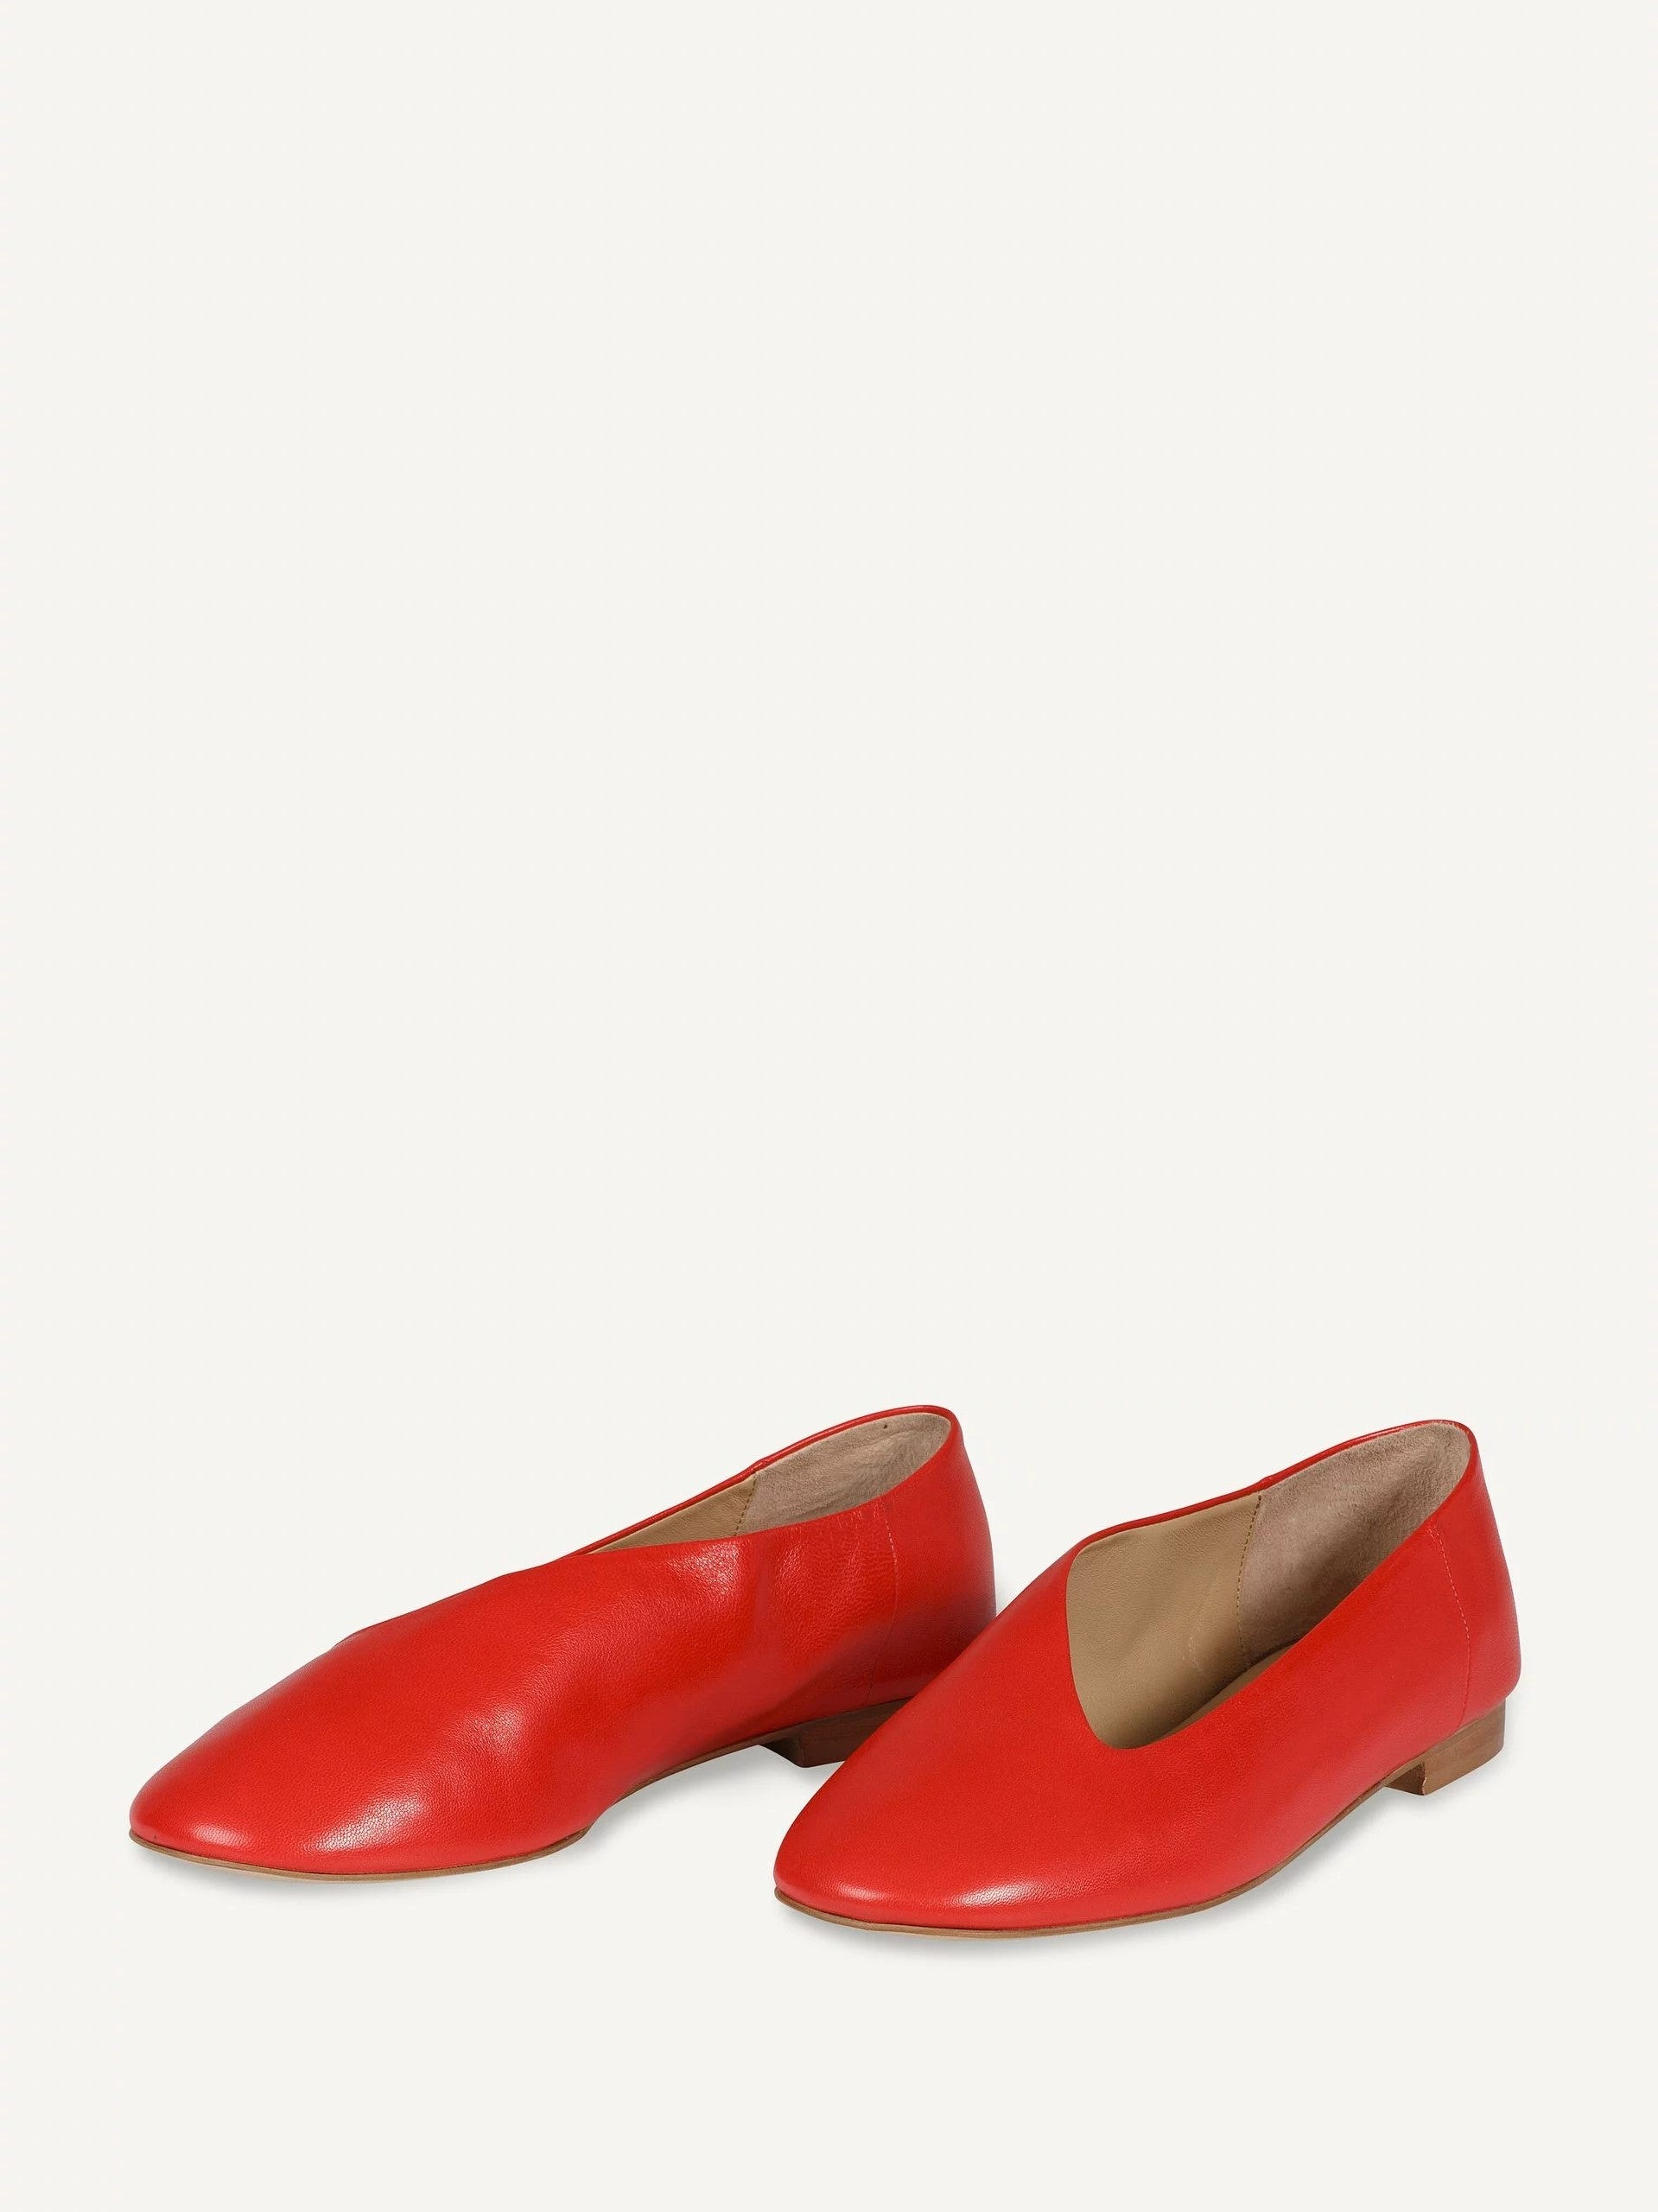 Iman Pumps in Red